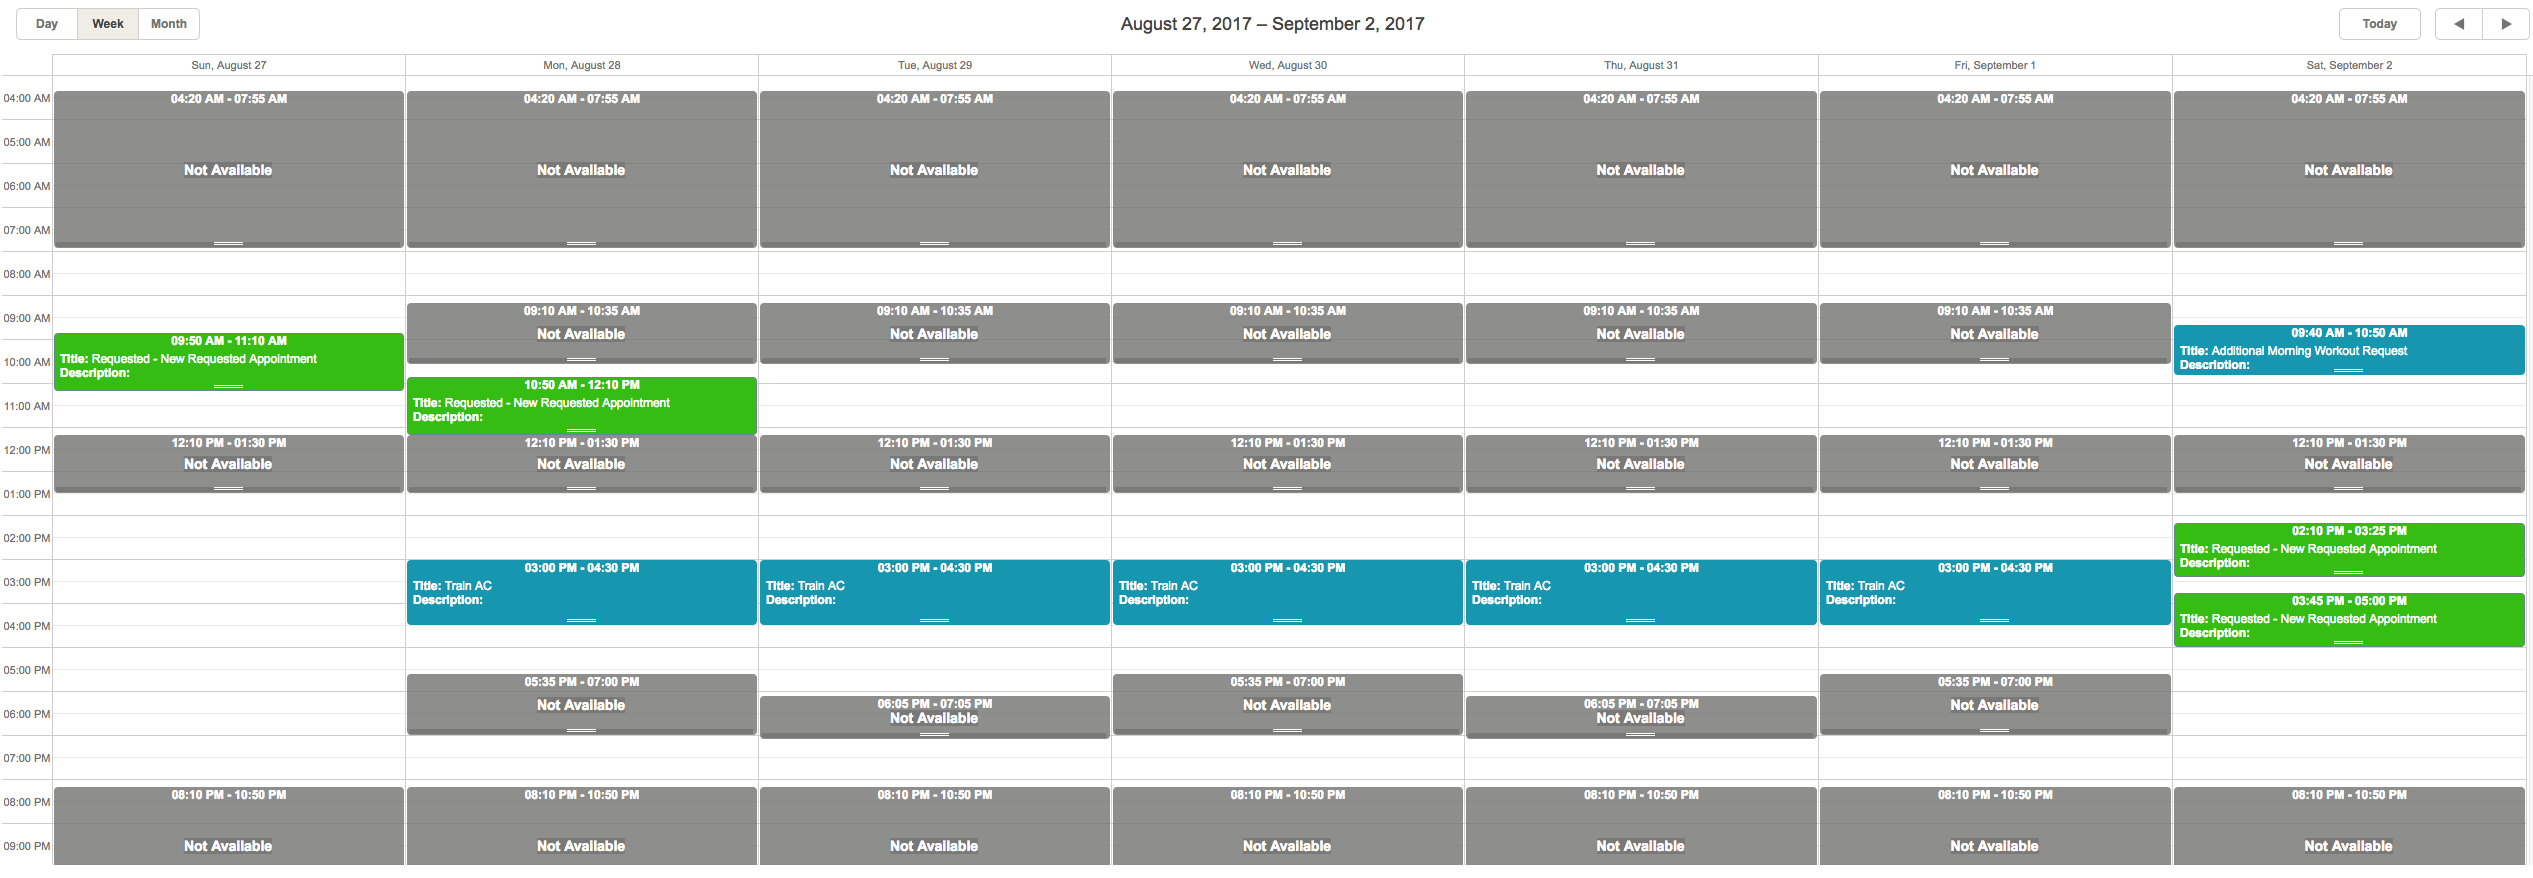 Here is what the Client sees when looking at the scheduler.